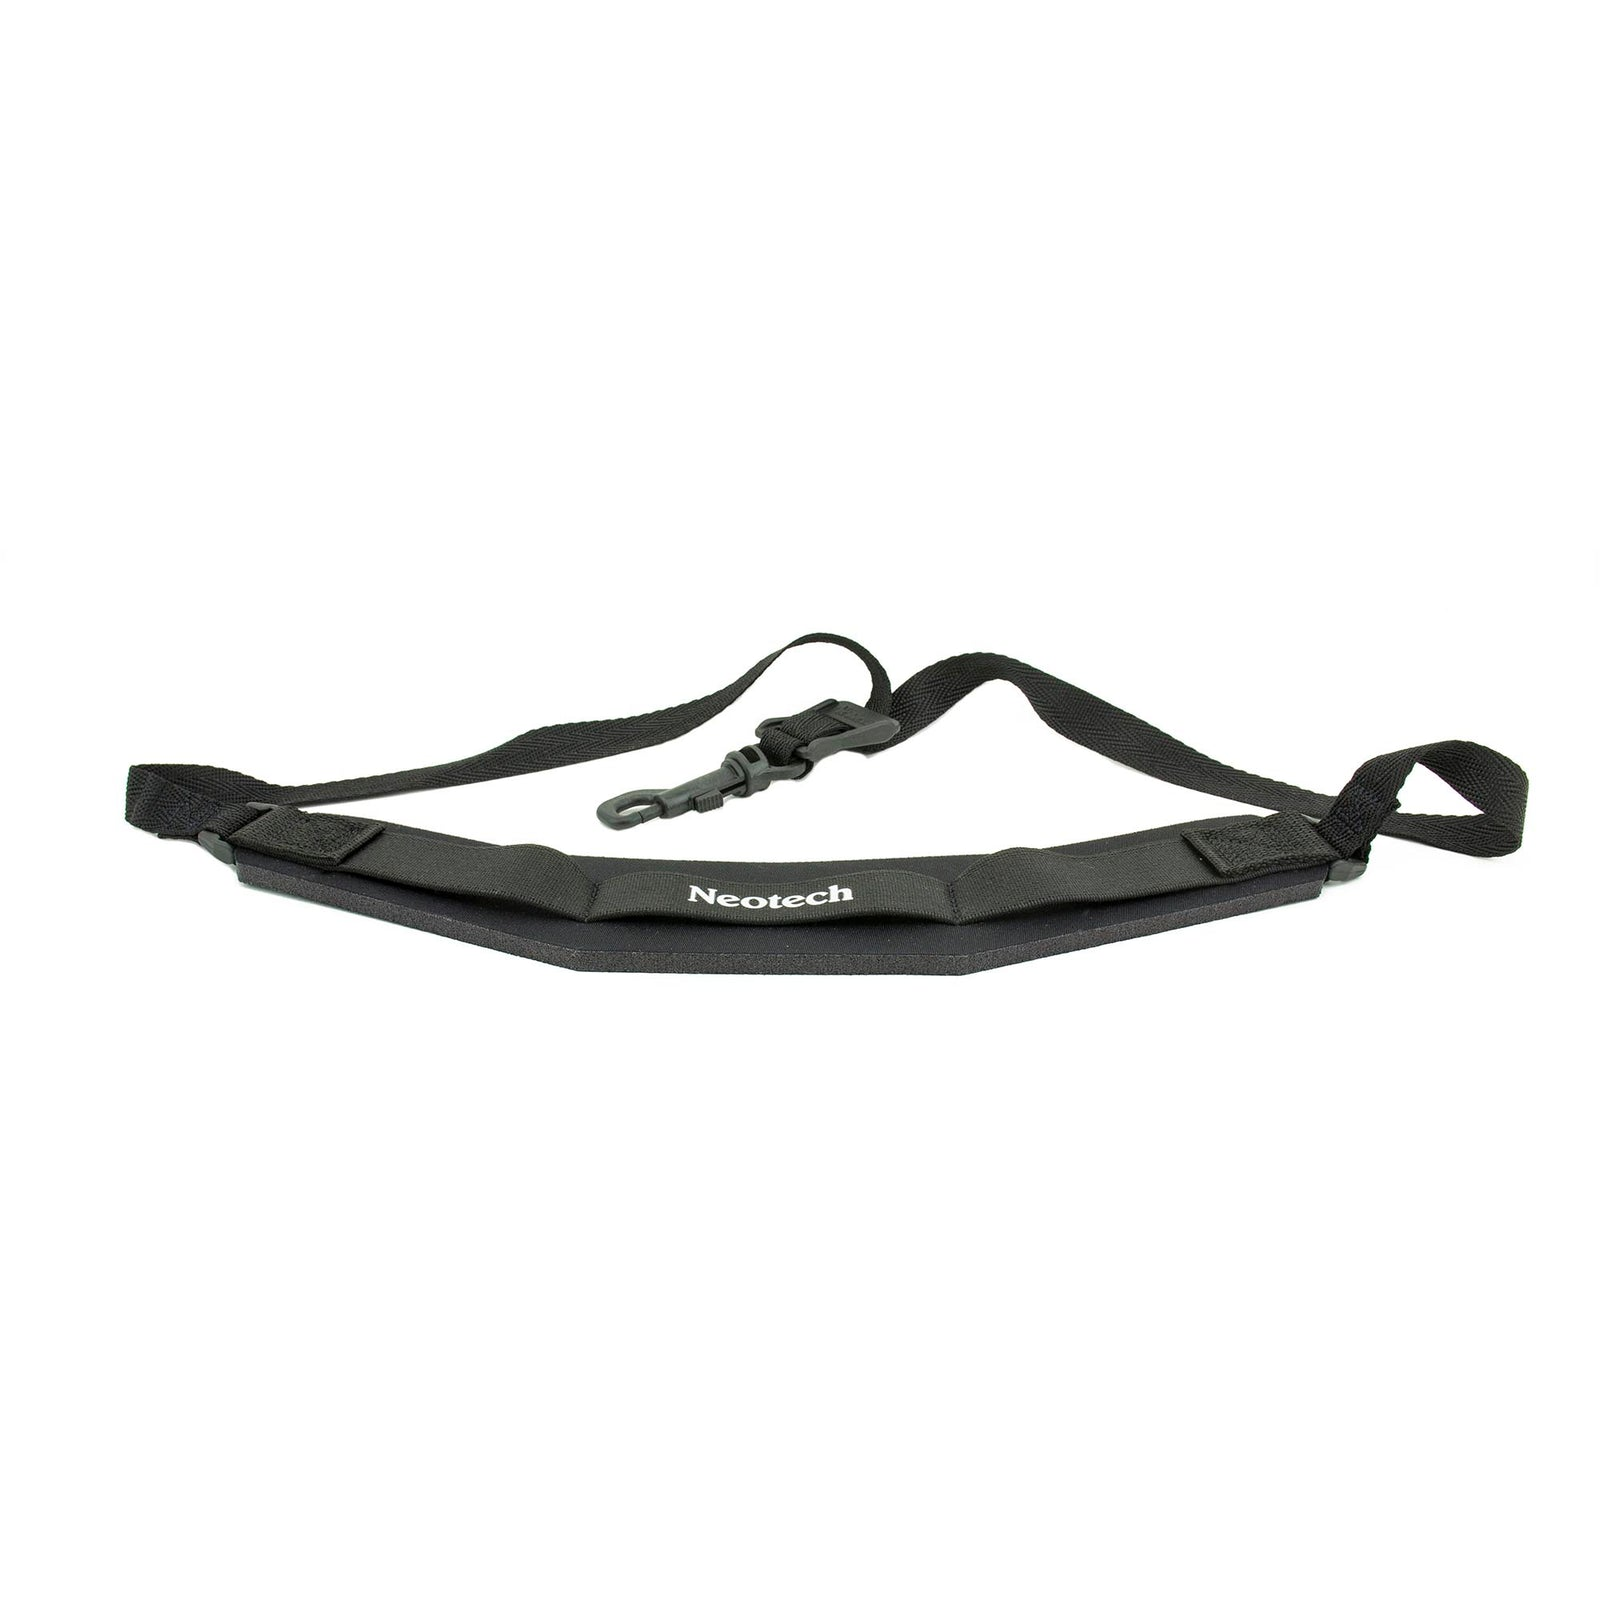 Neotech Neck Strap - X-Long - Swivel Hook - Black